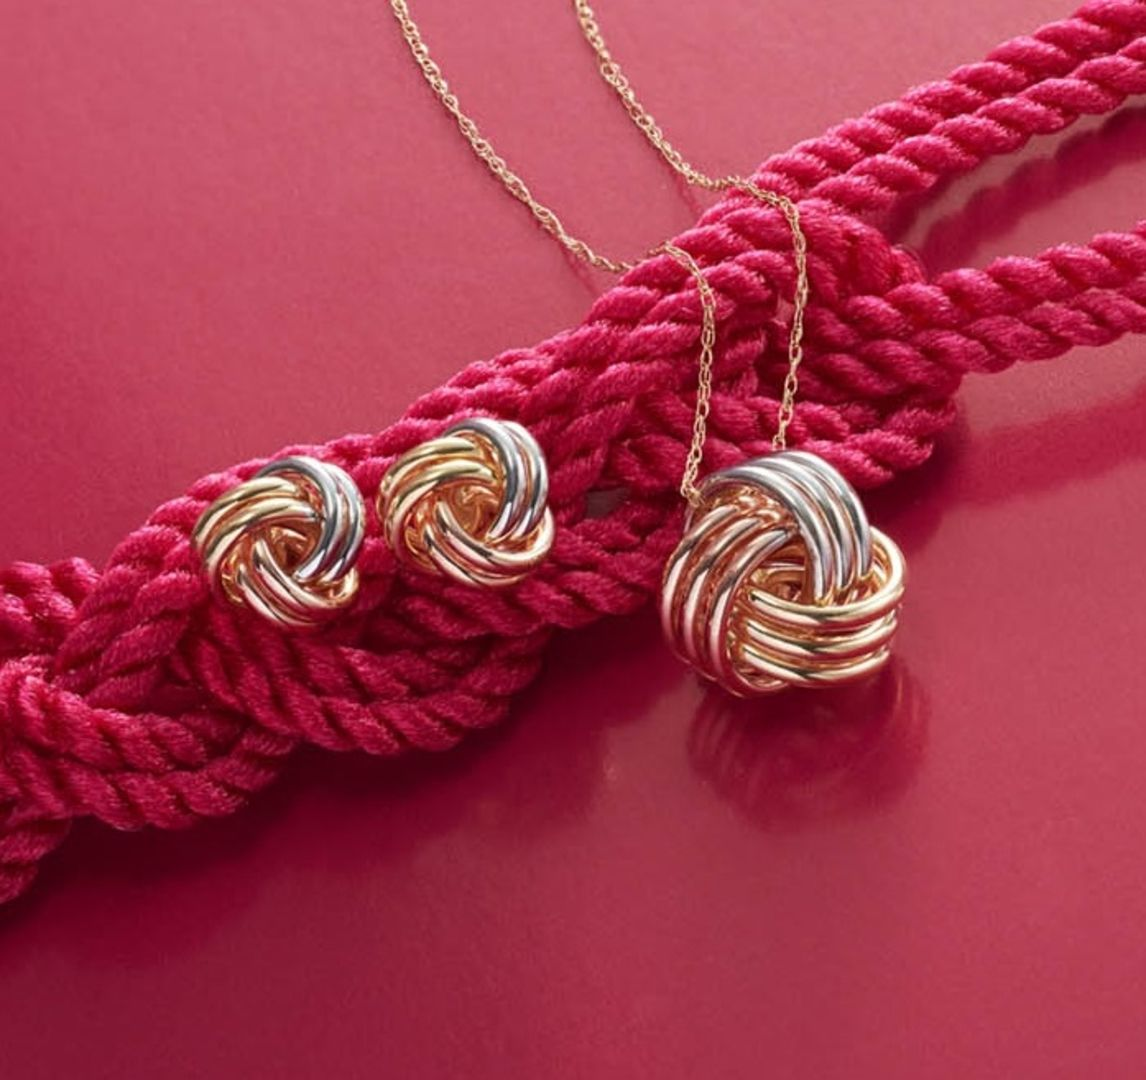 Yellow White And Rose Gold Intertwine To Create The Symbol Of Never